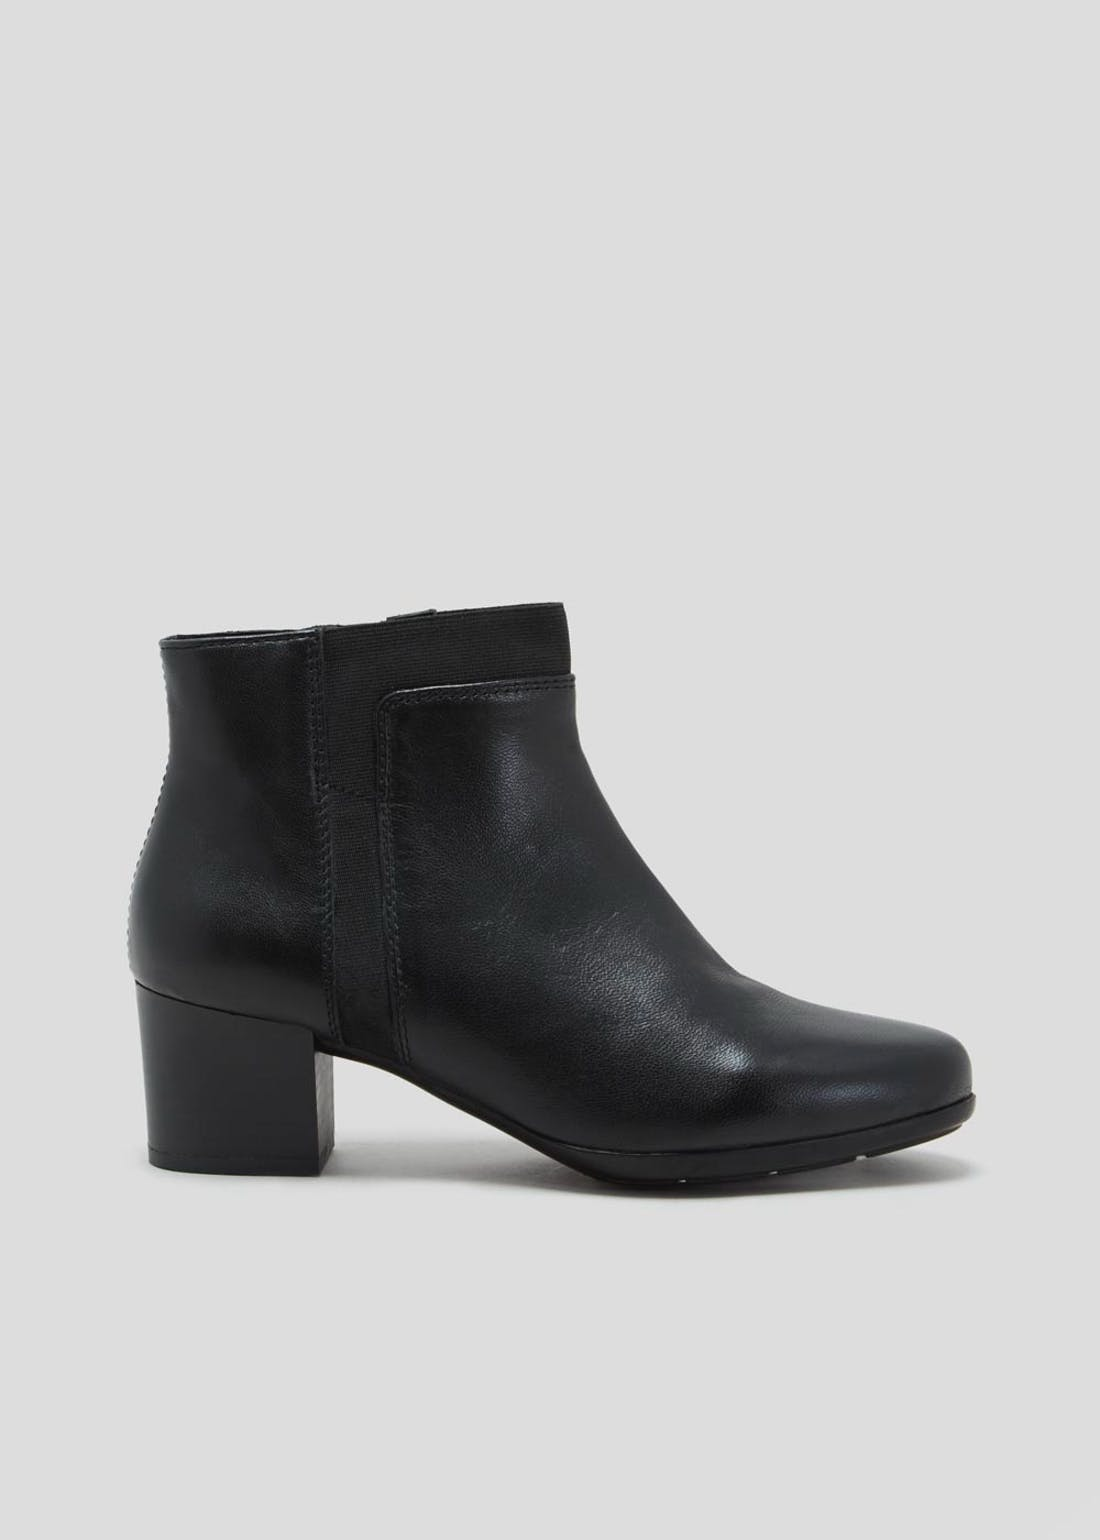 Soleflex Black Real Leather Heeled Ankle Boots